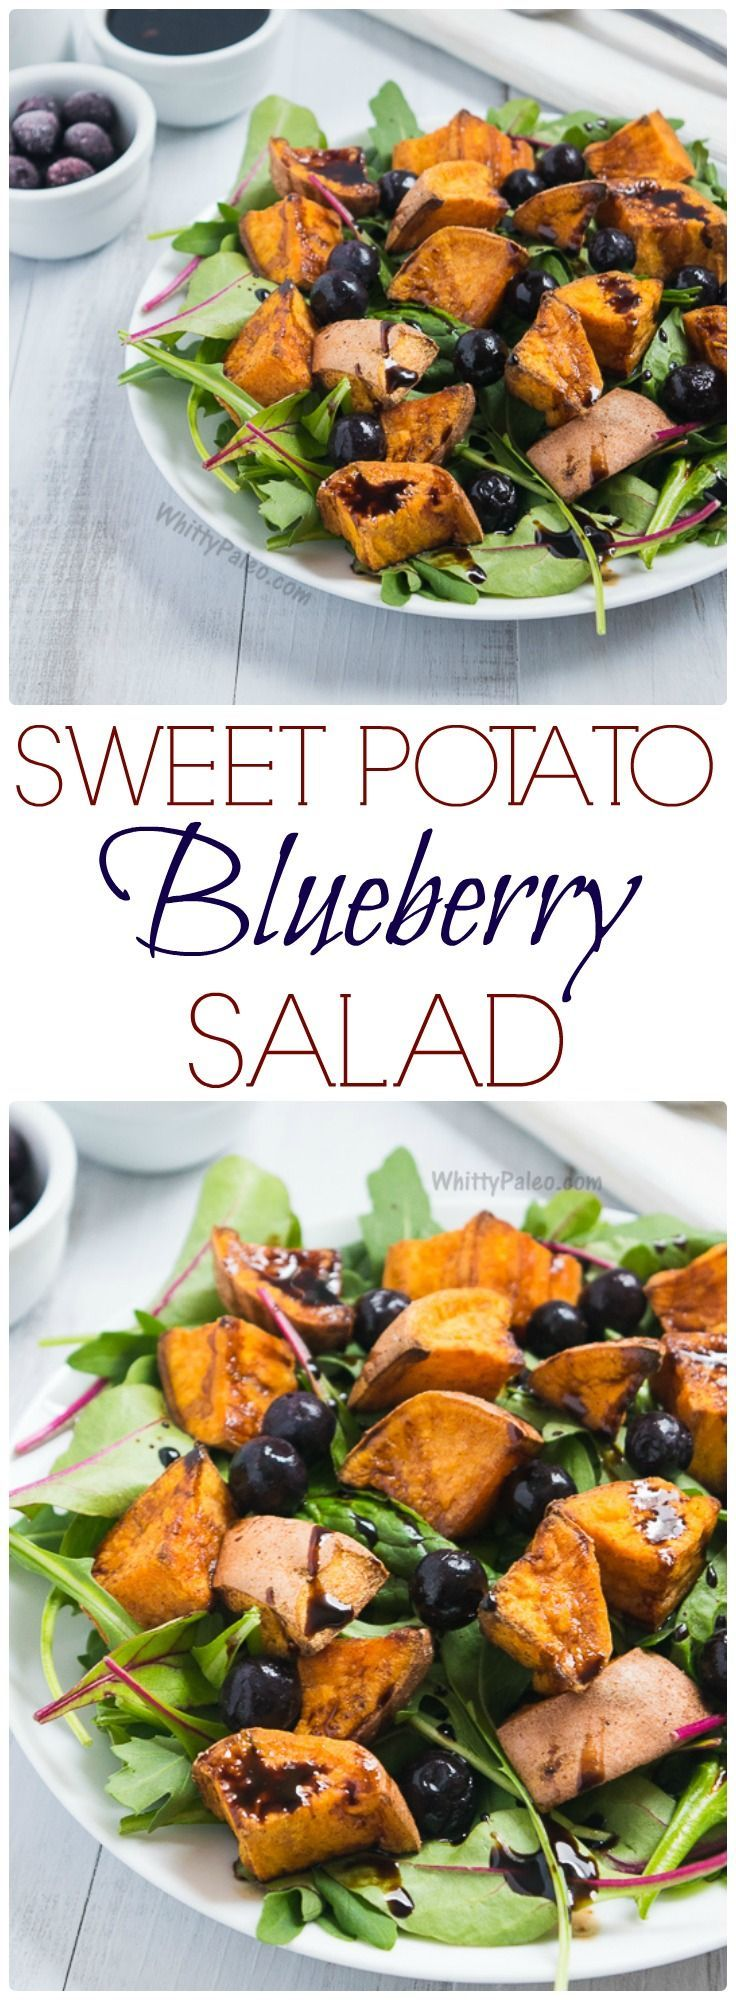 Cinnamon Roasted Sweet Potato Blueberry Salad with Balsamic Reduction from WhittyPaleo.com